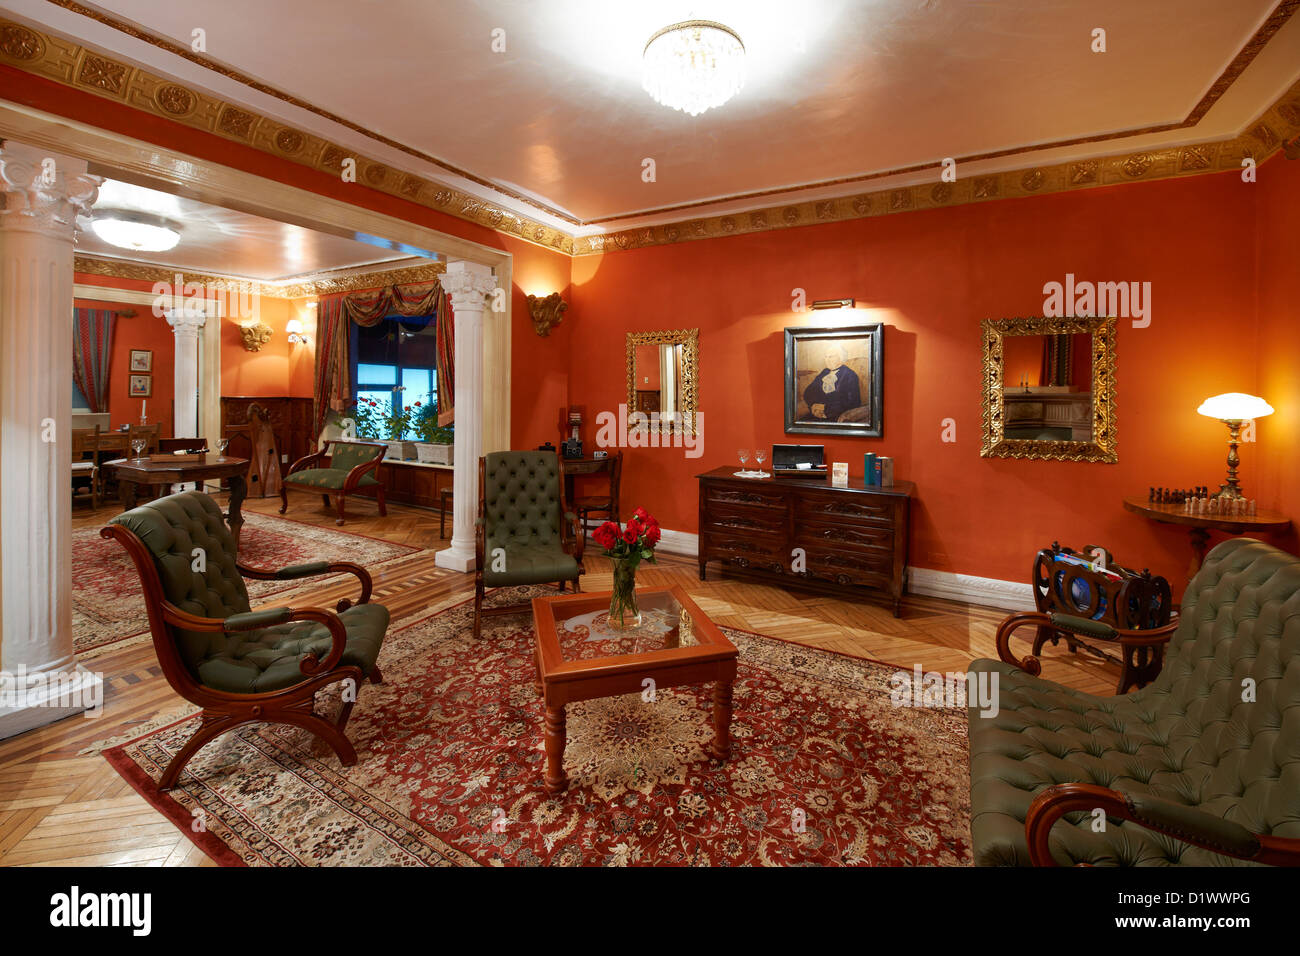 Interior Shot Of Lobby In Colonial Styled Hotel Named City Art  # Muebles Colineal Ecuador